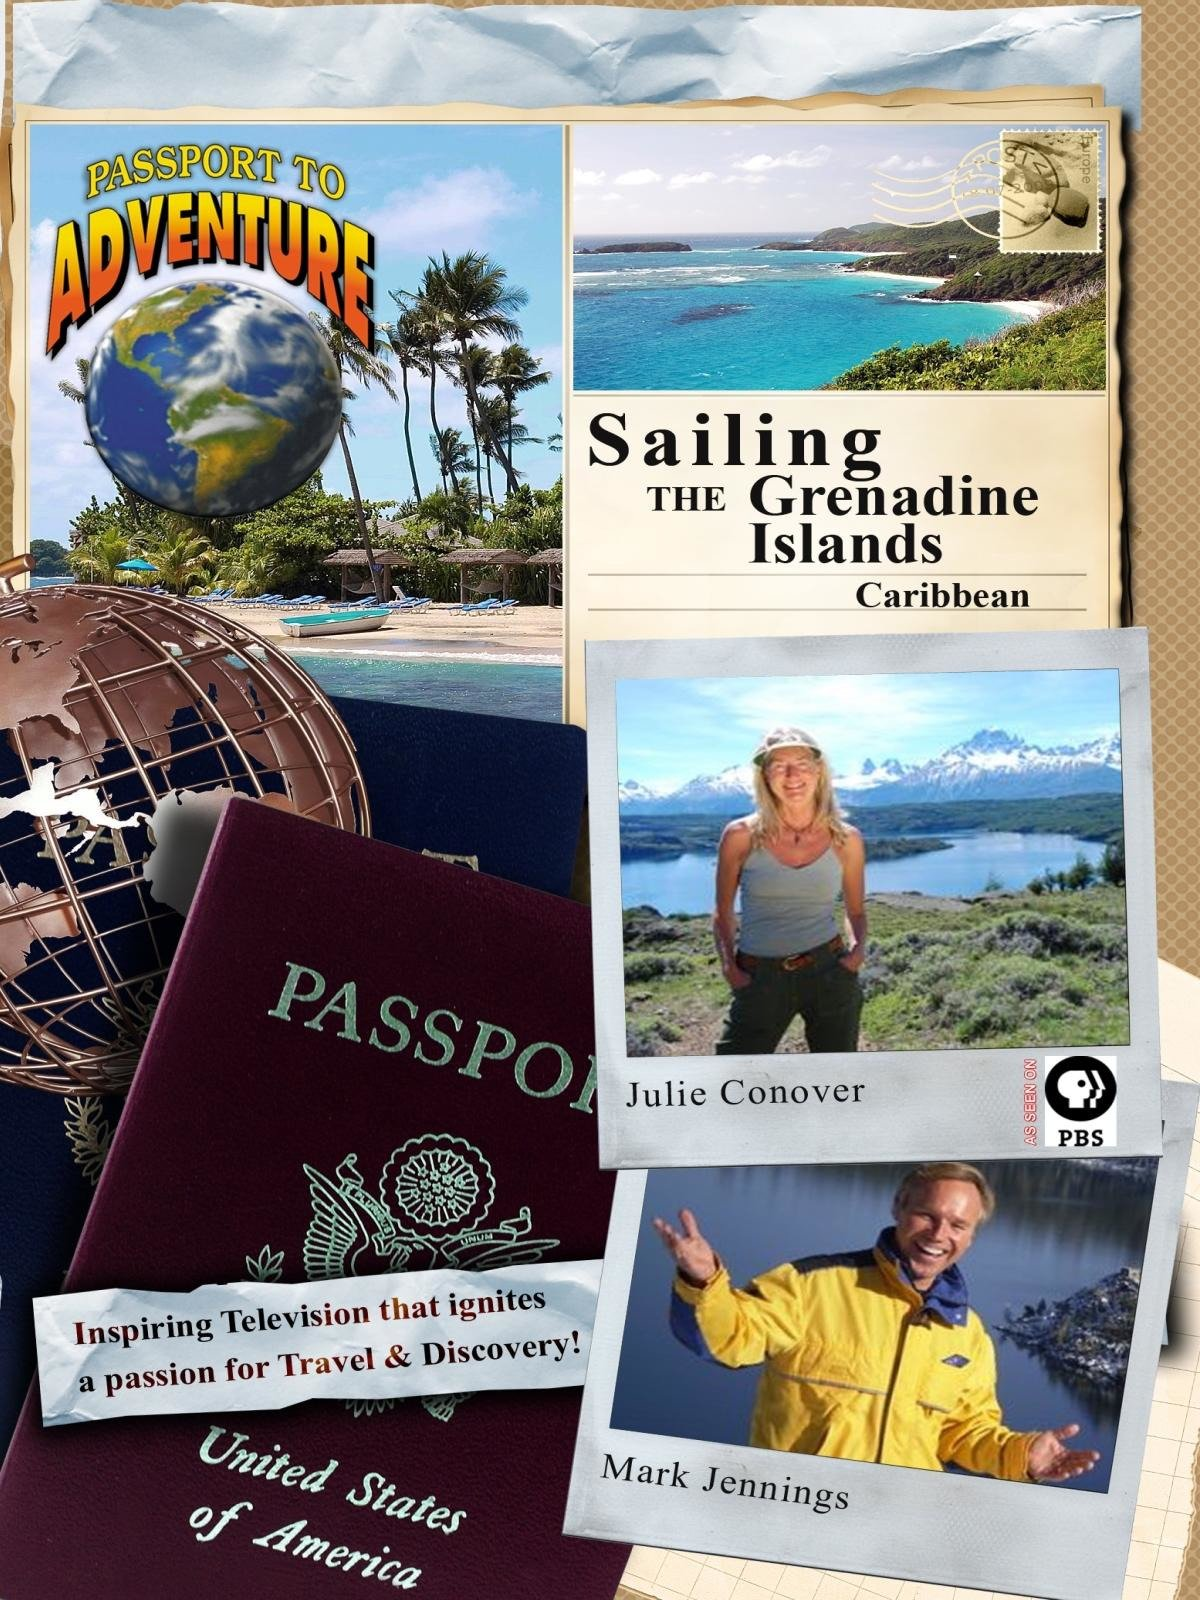 Passport to Adventure: Sailing the Grenadine Islands Caribbean